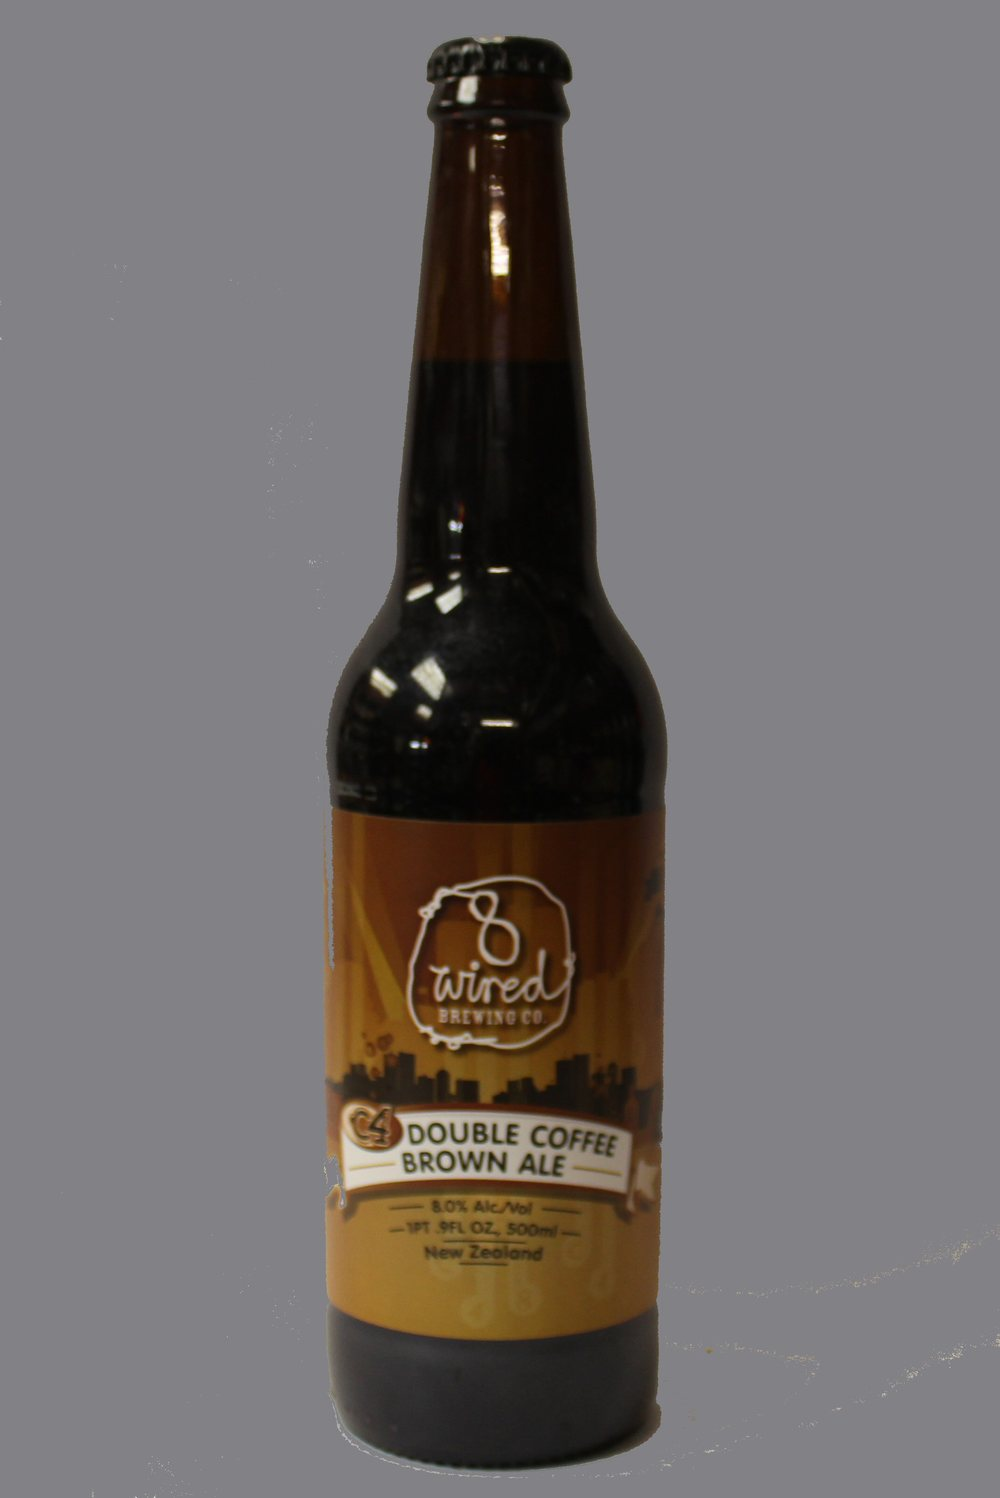 8WIRED-Double Coffe Brown Ale.jpg